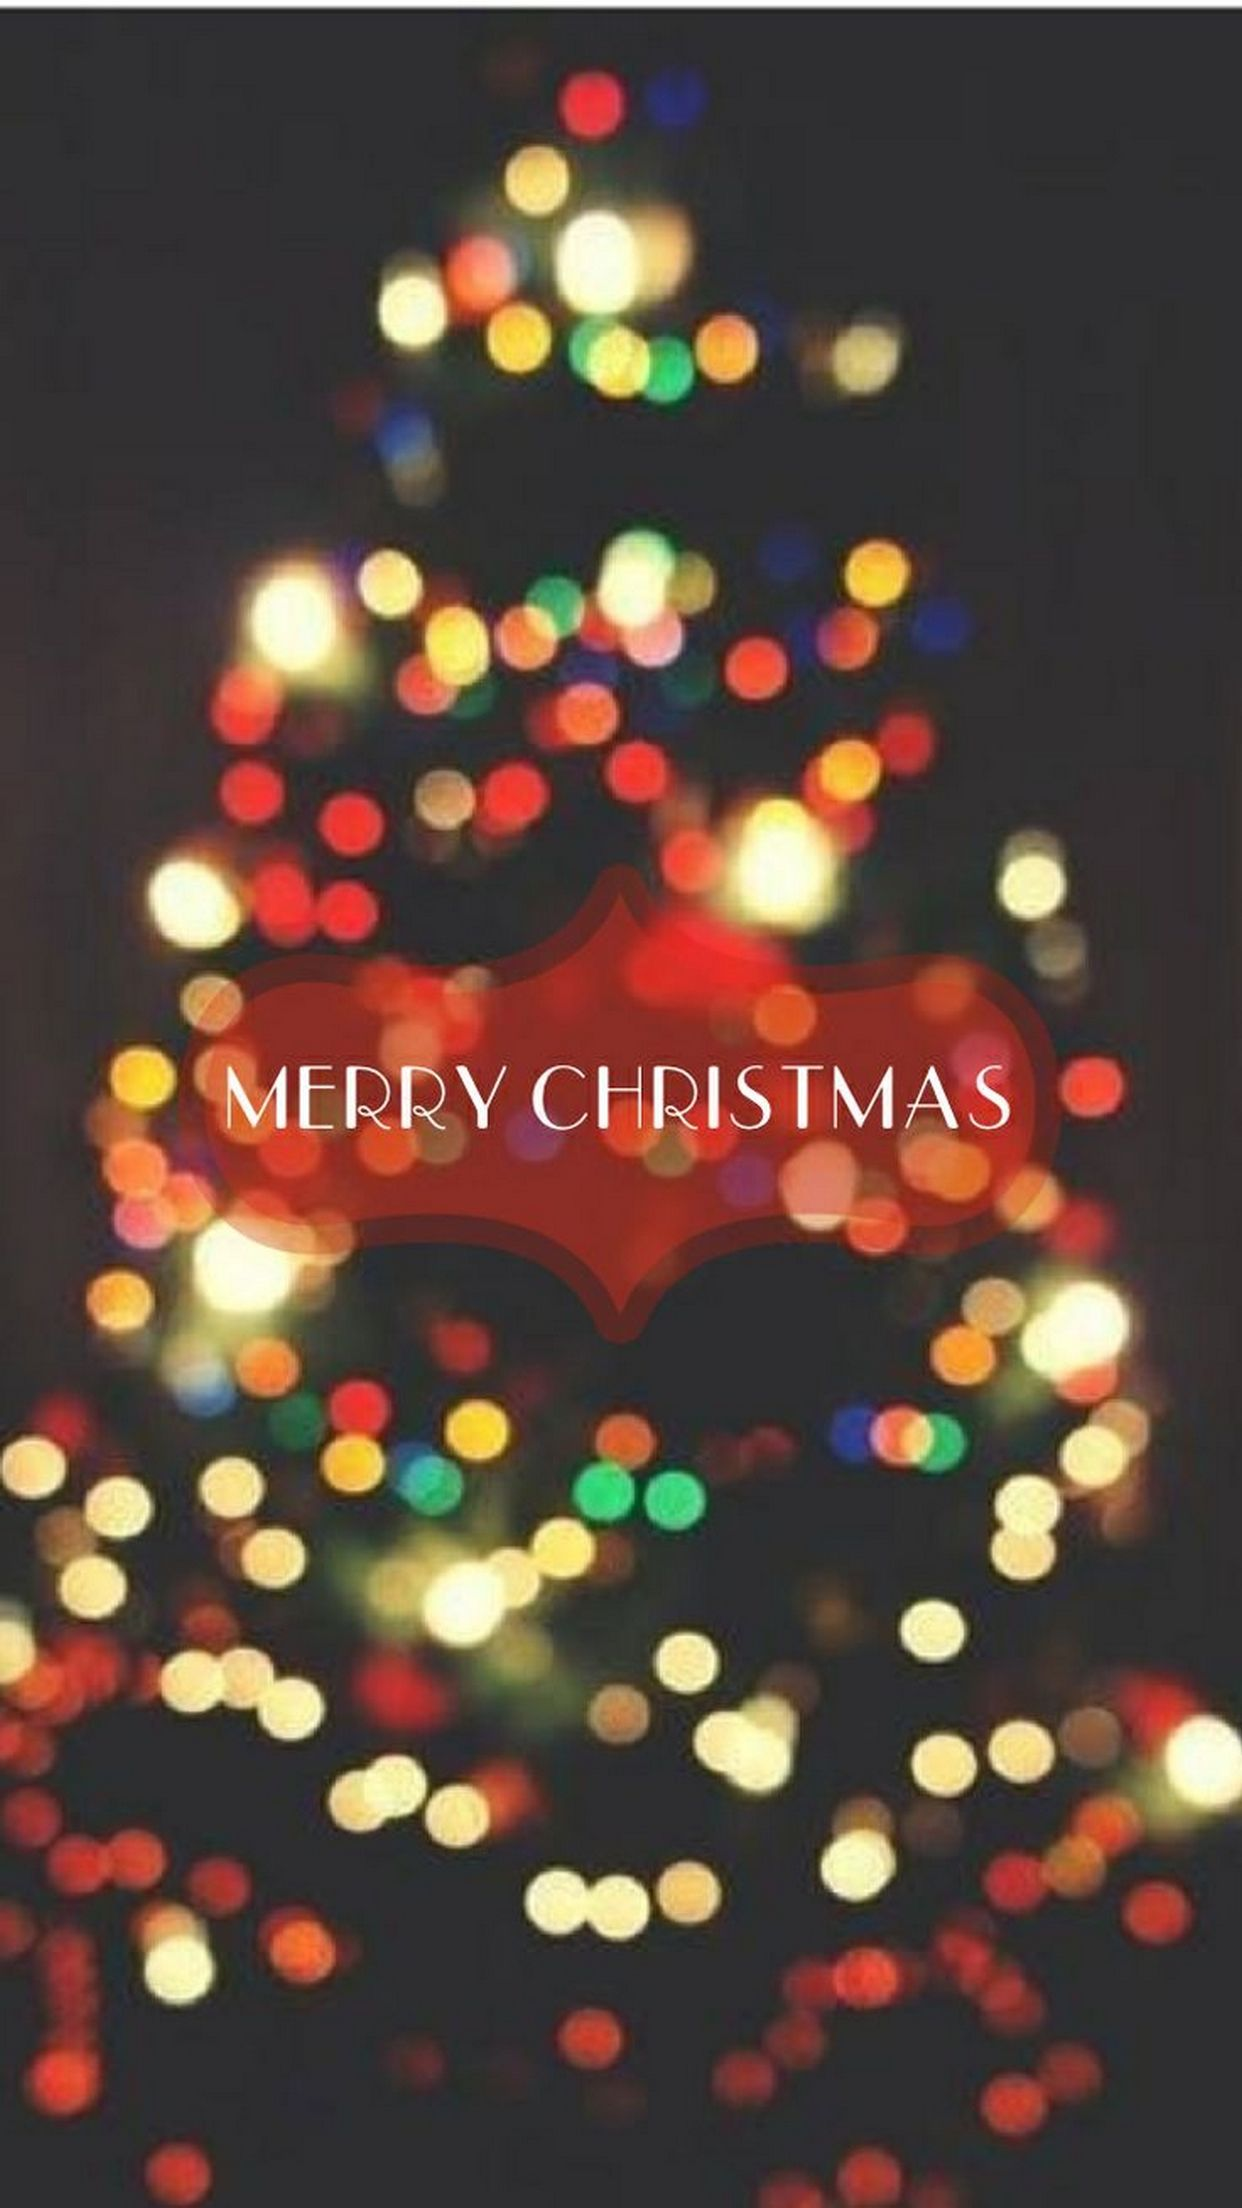 Christmas iPhone Wallpapers , Top Free Christmas iPhone